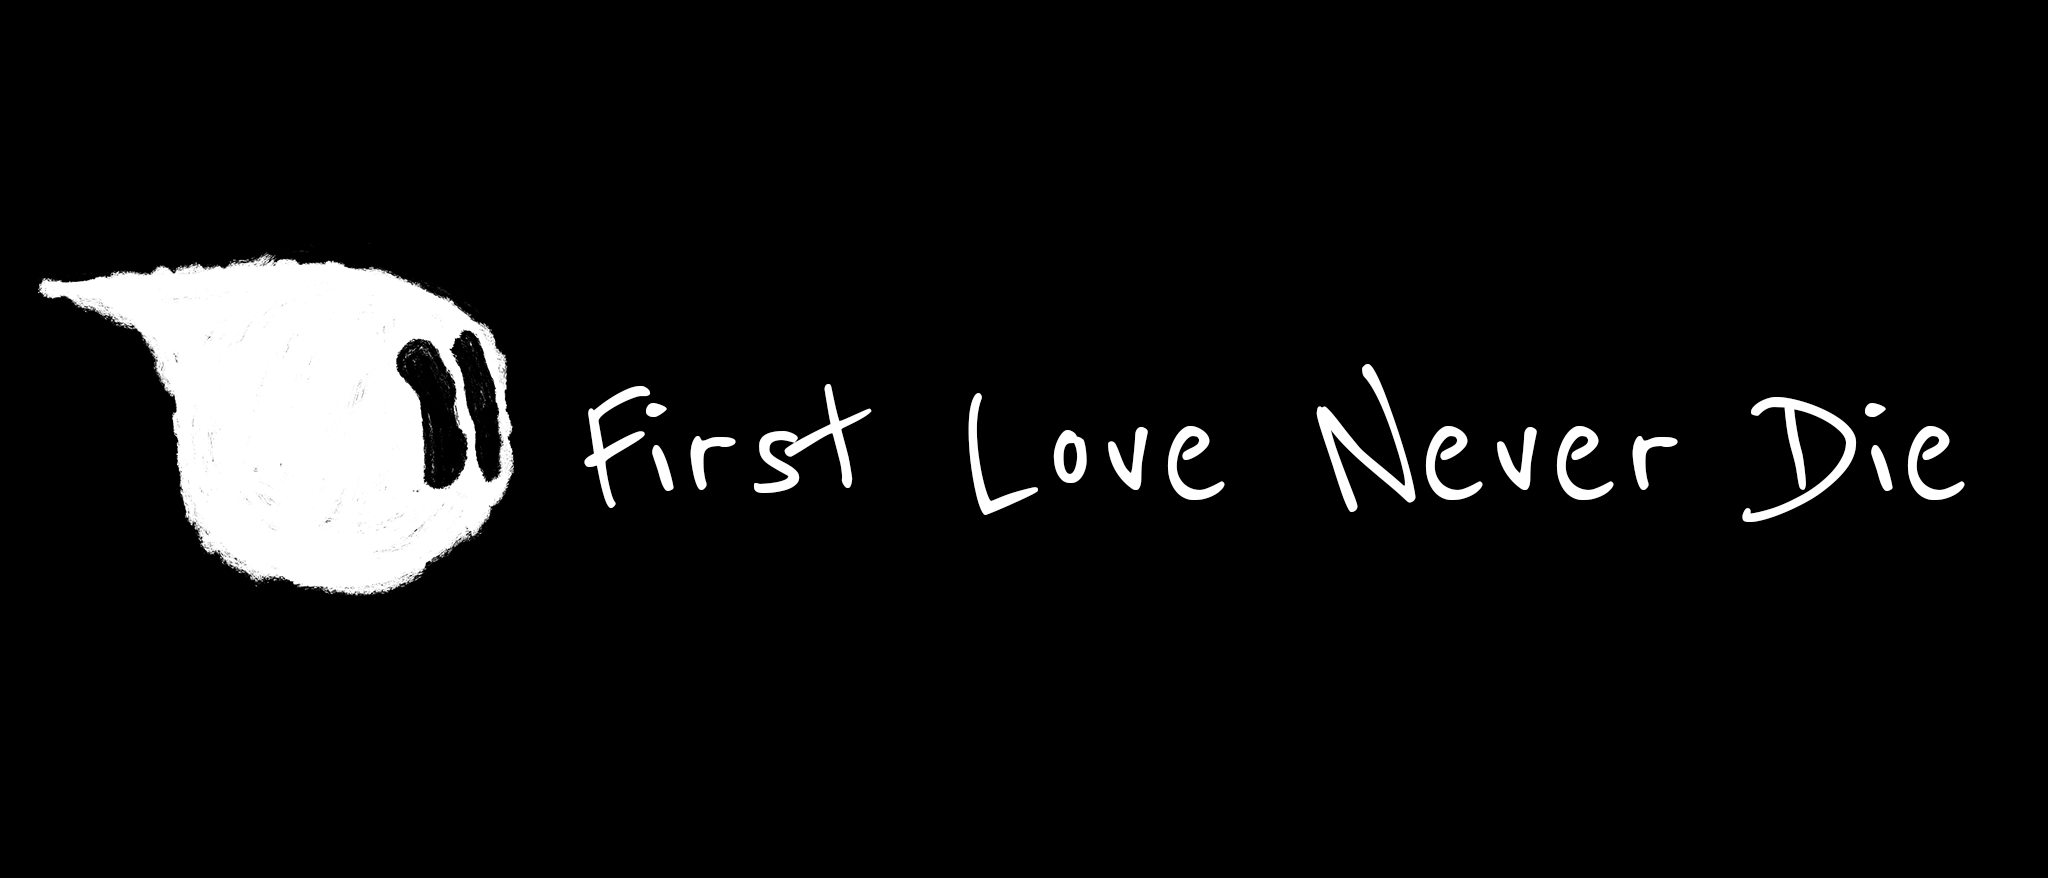 First Love Never Die